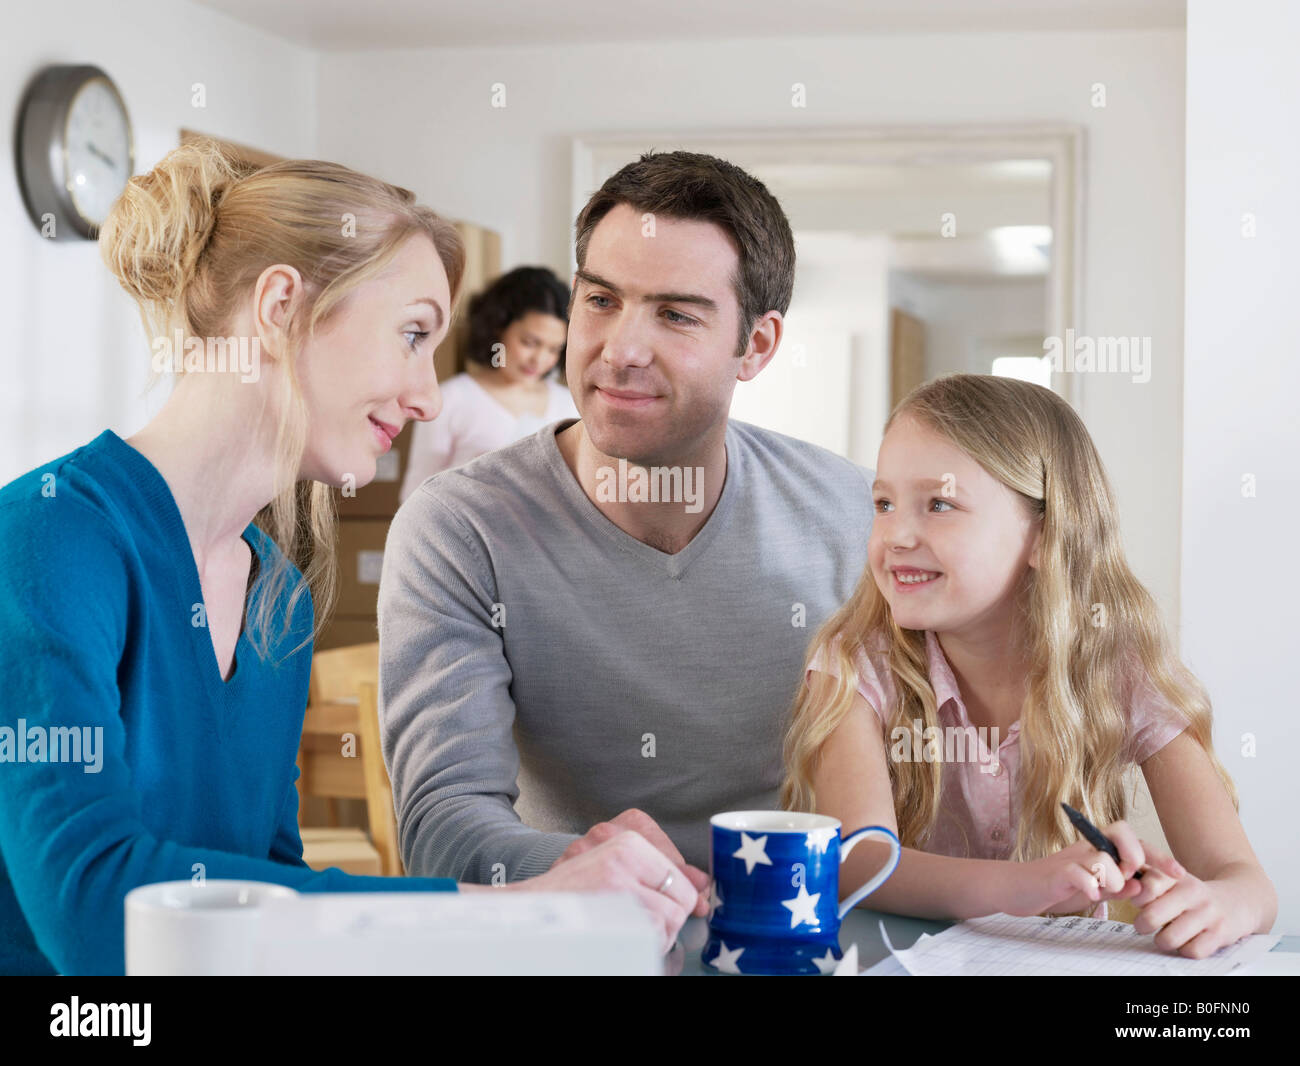 Family taking a break at kitchen table - Stock Image